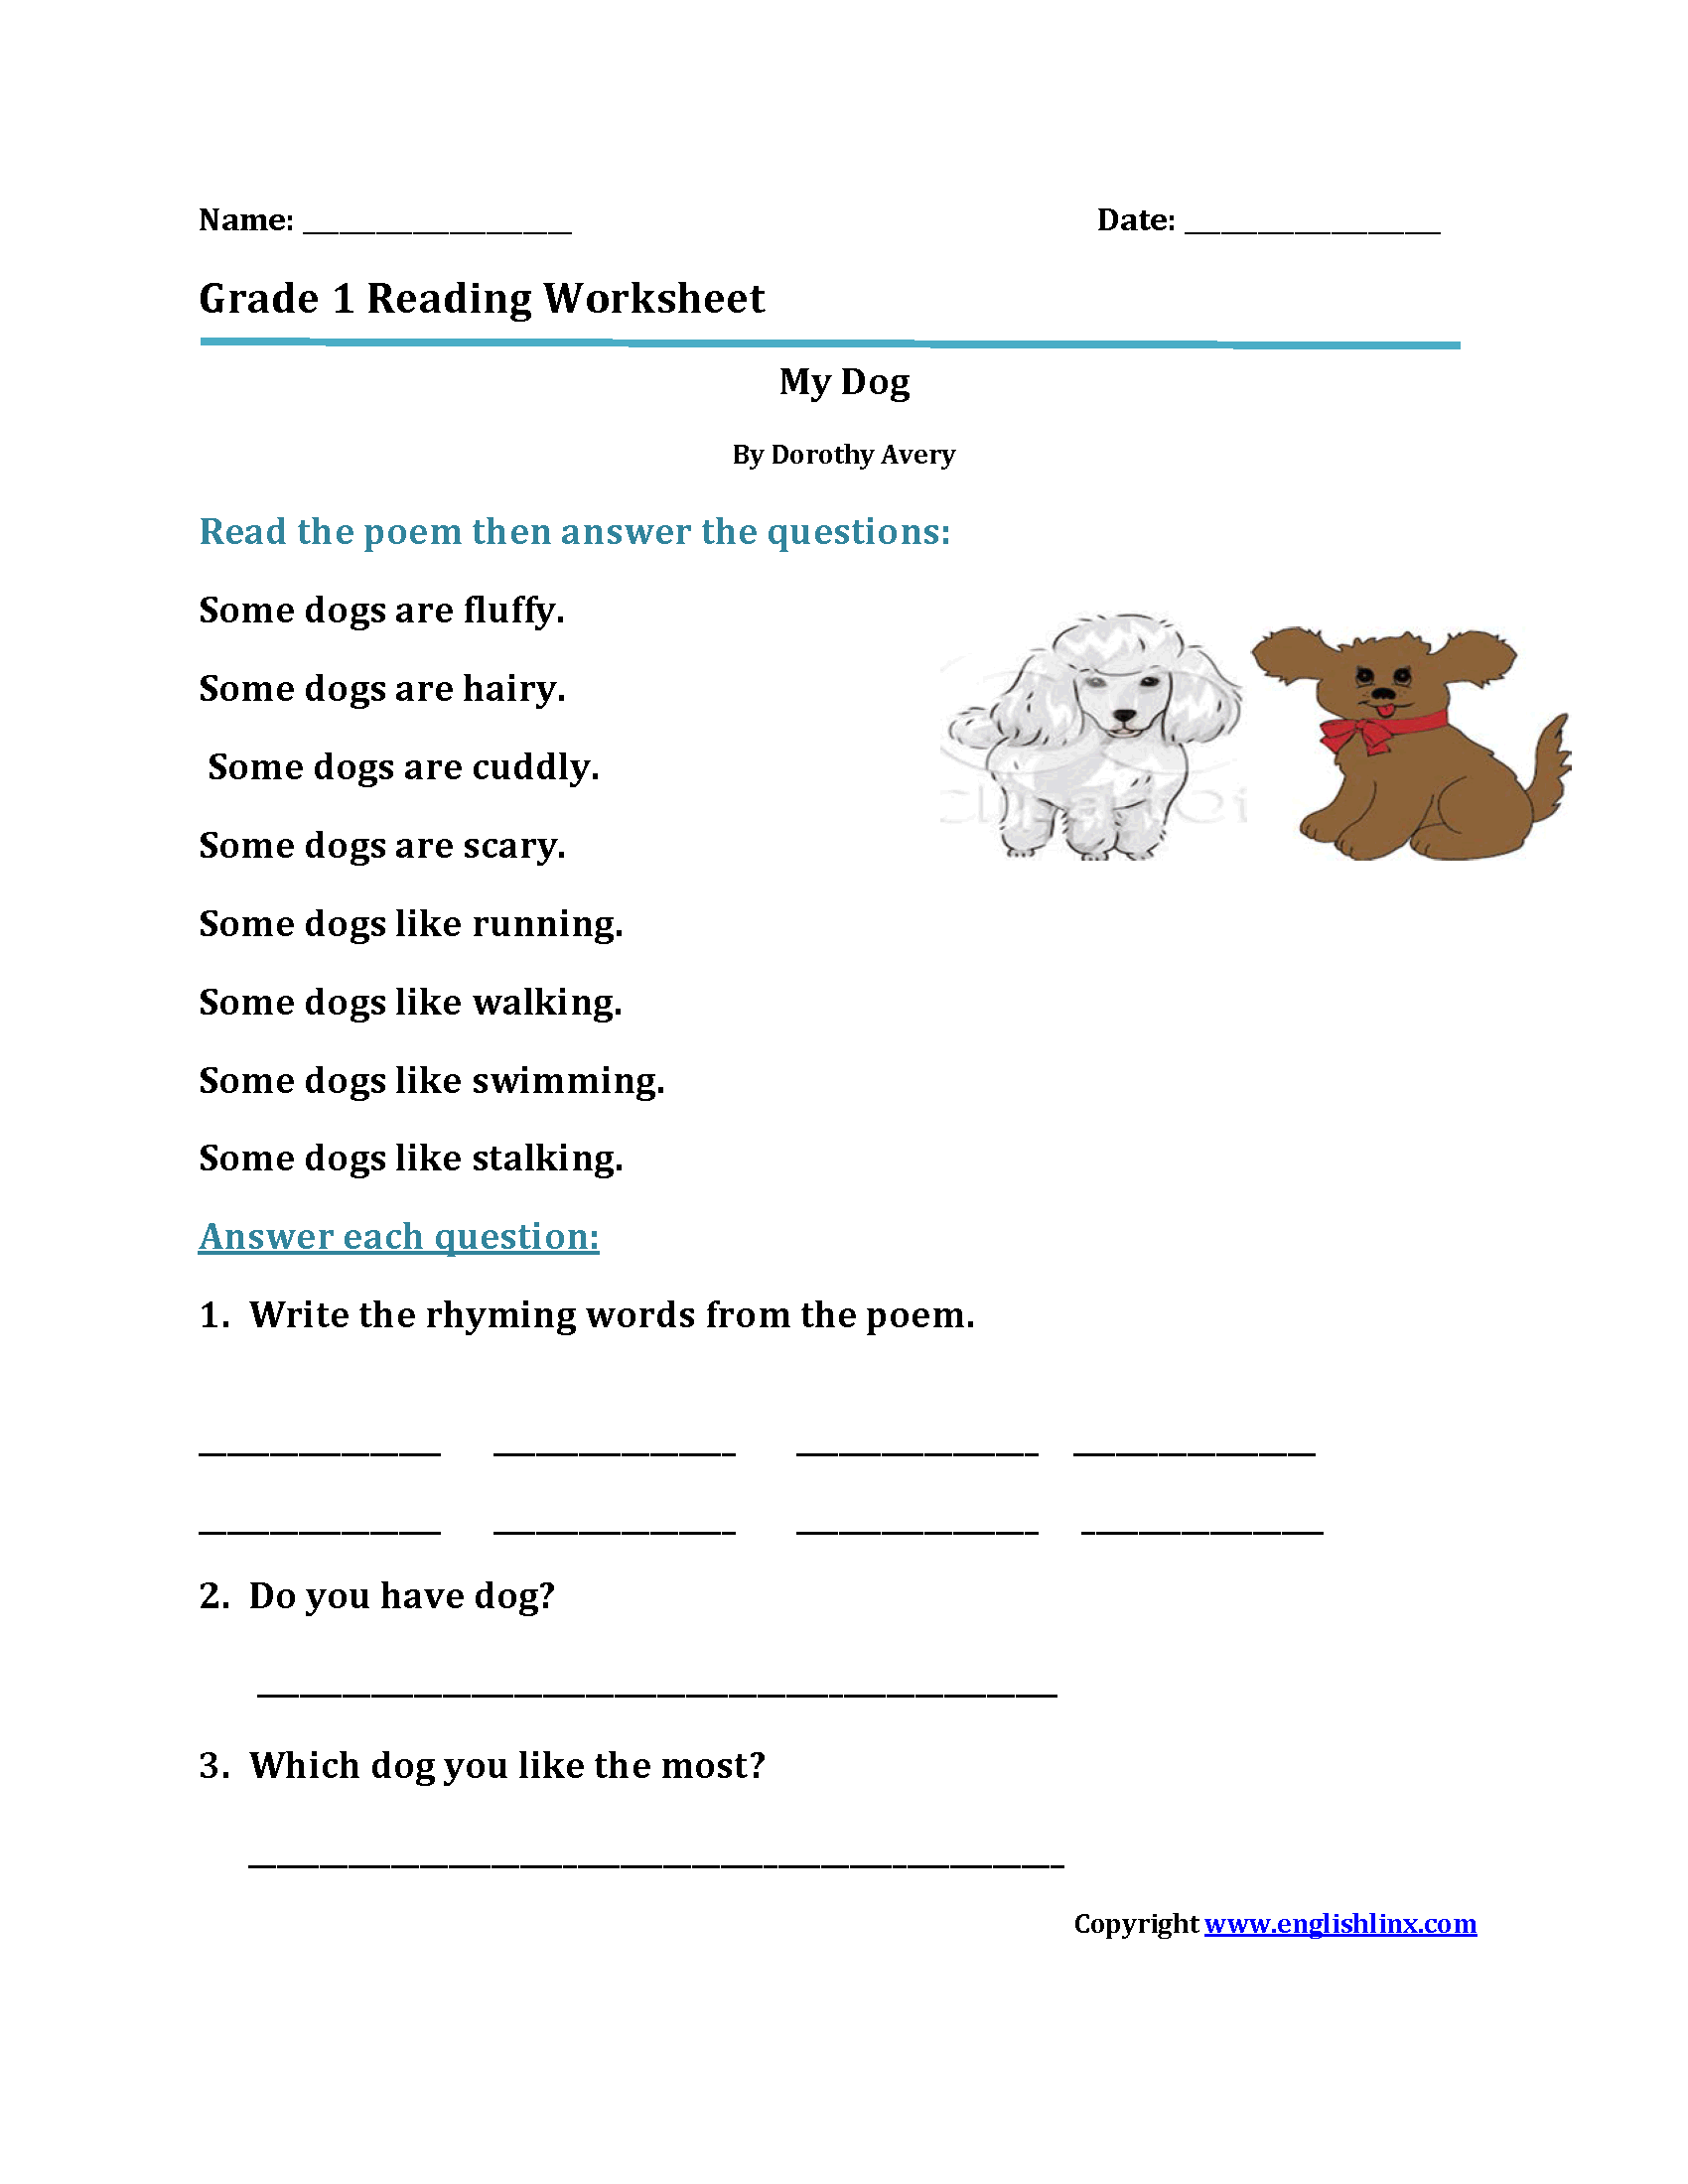 Worksheets Reading Worksheets For 1st Graders reading worksheets first grade my dogfirst worksheets